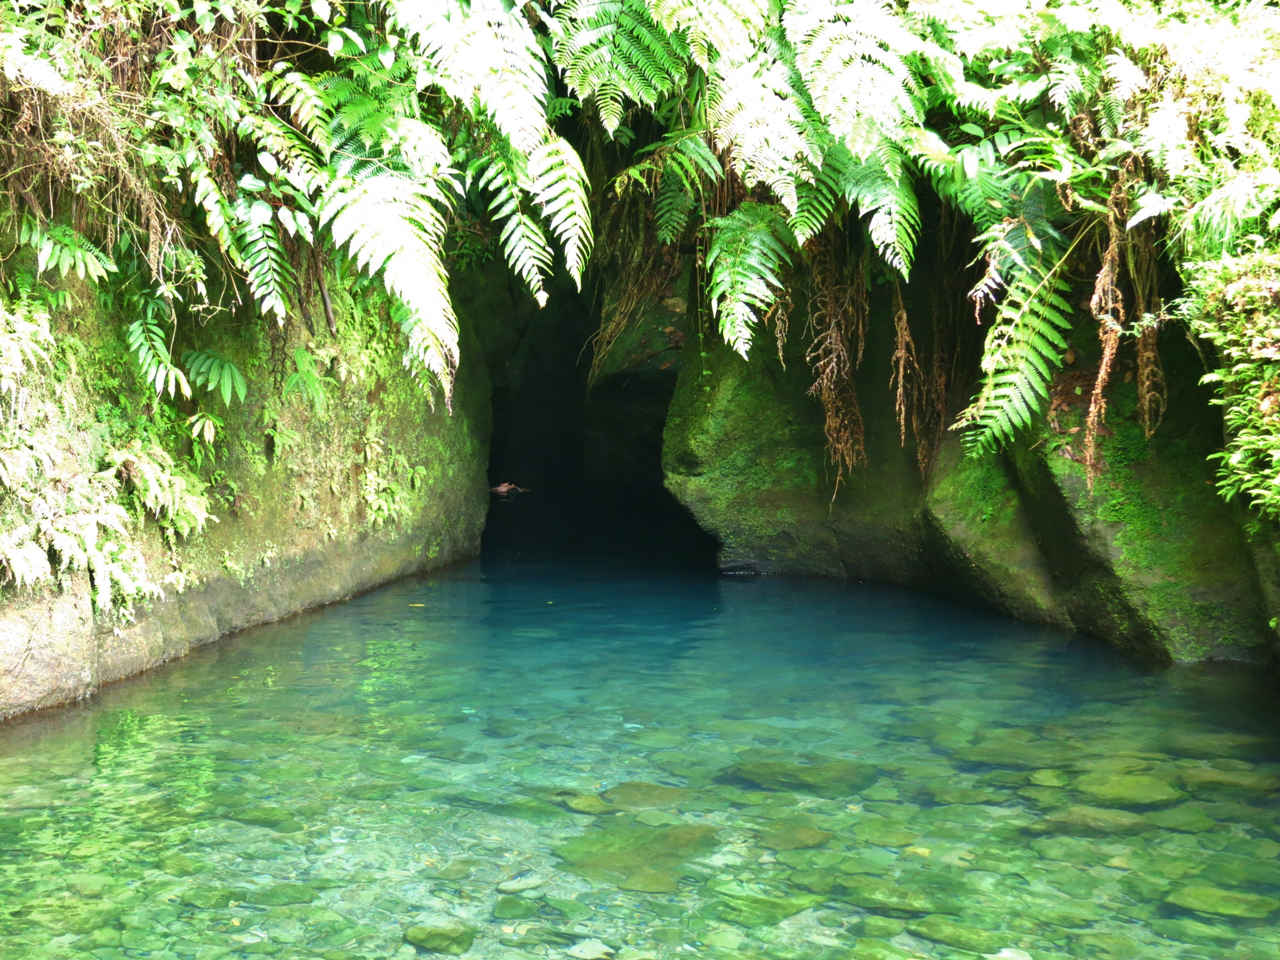 The inconspicuous entrance to Titou Gorge